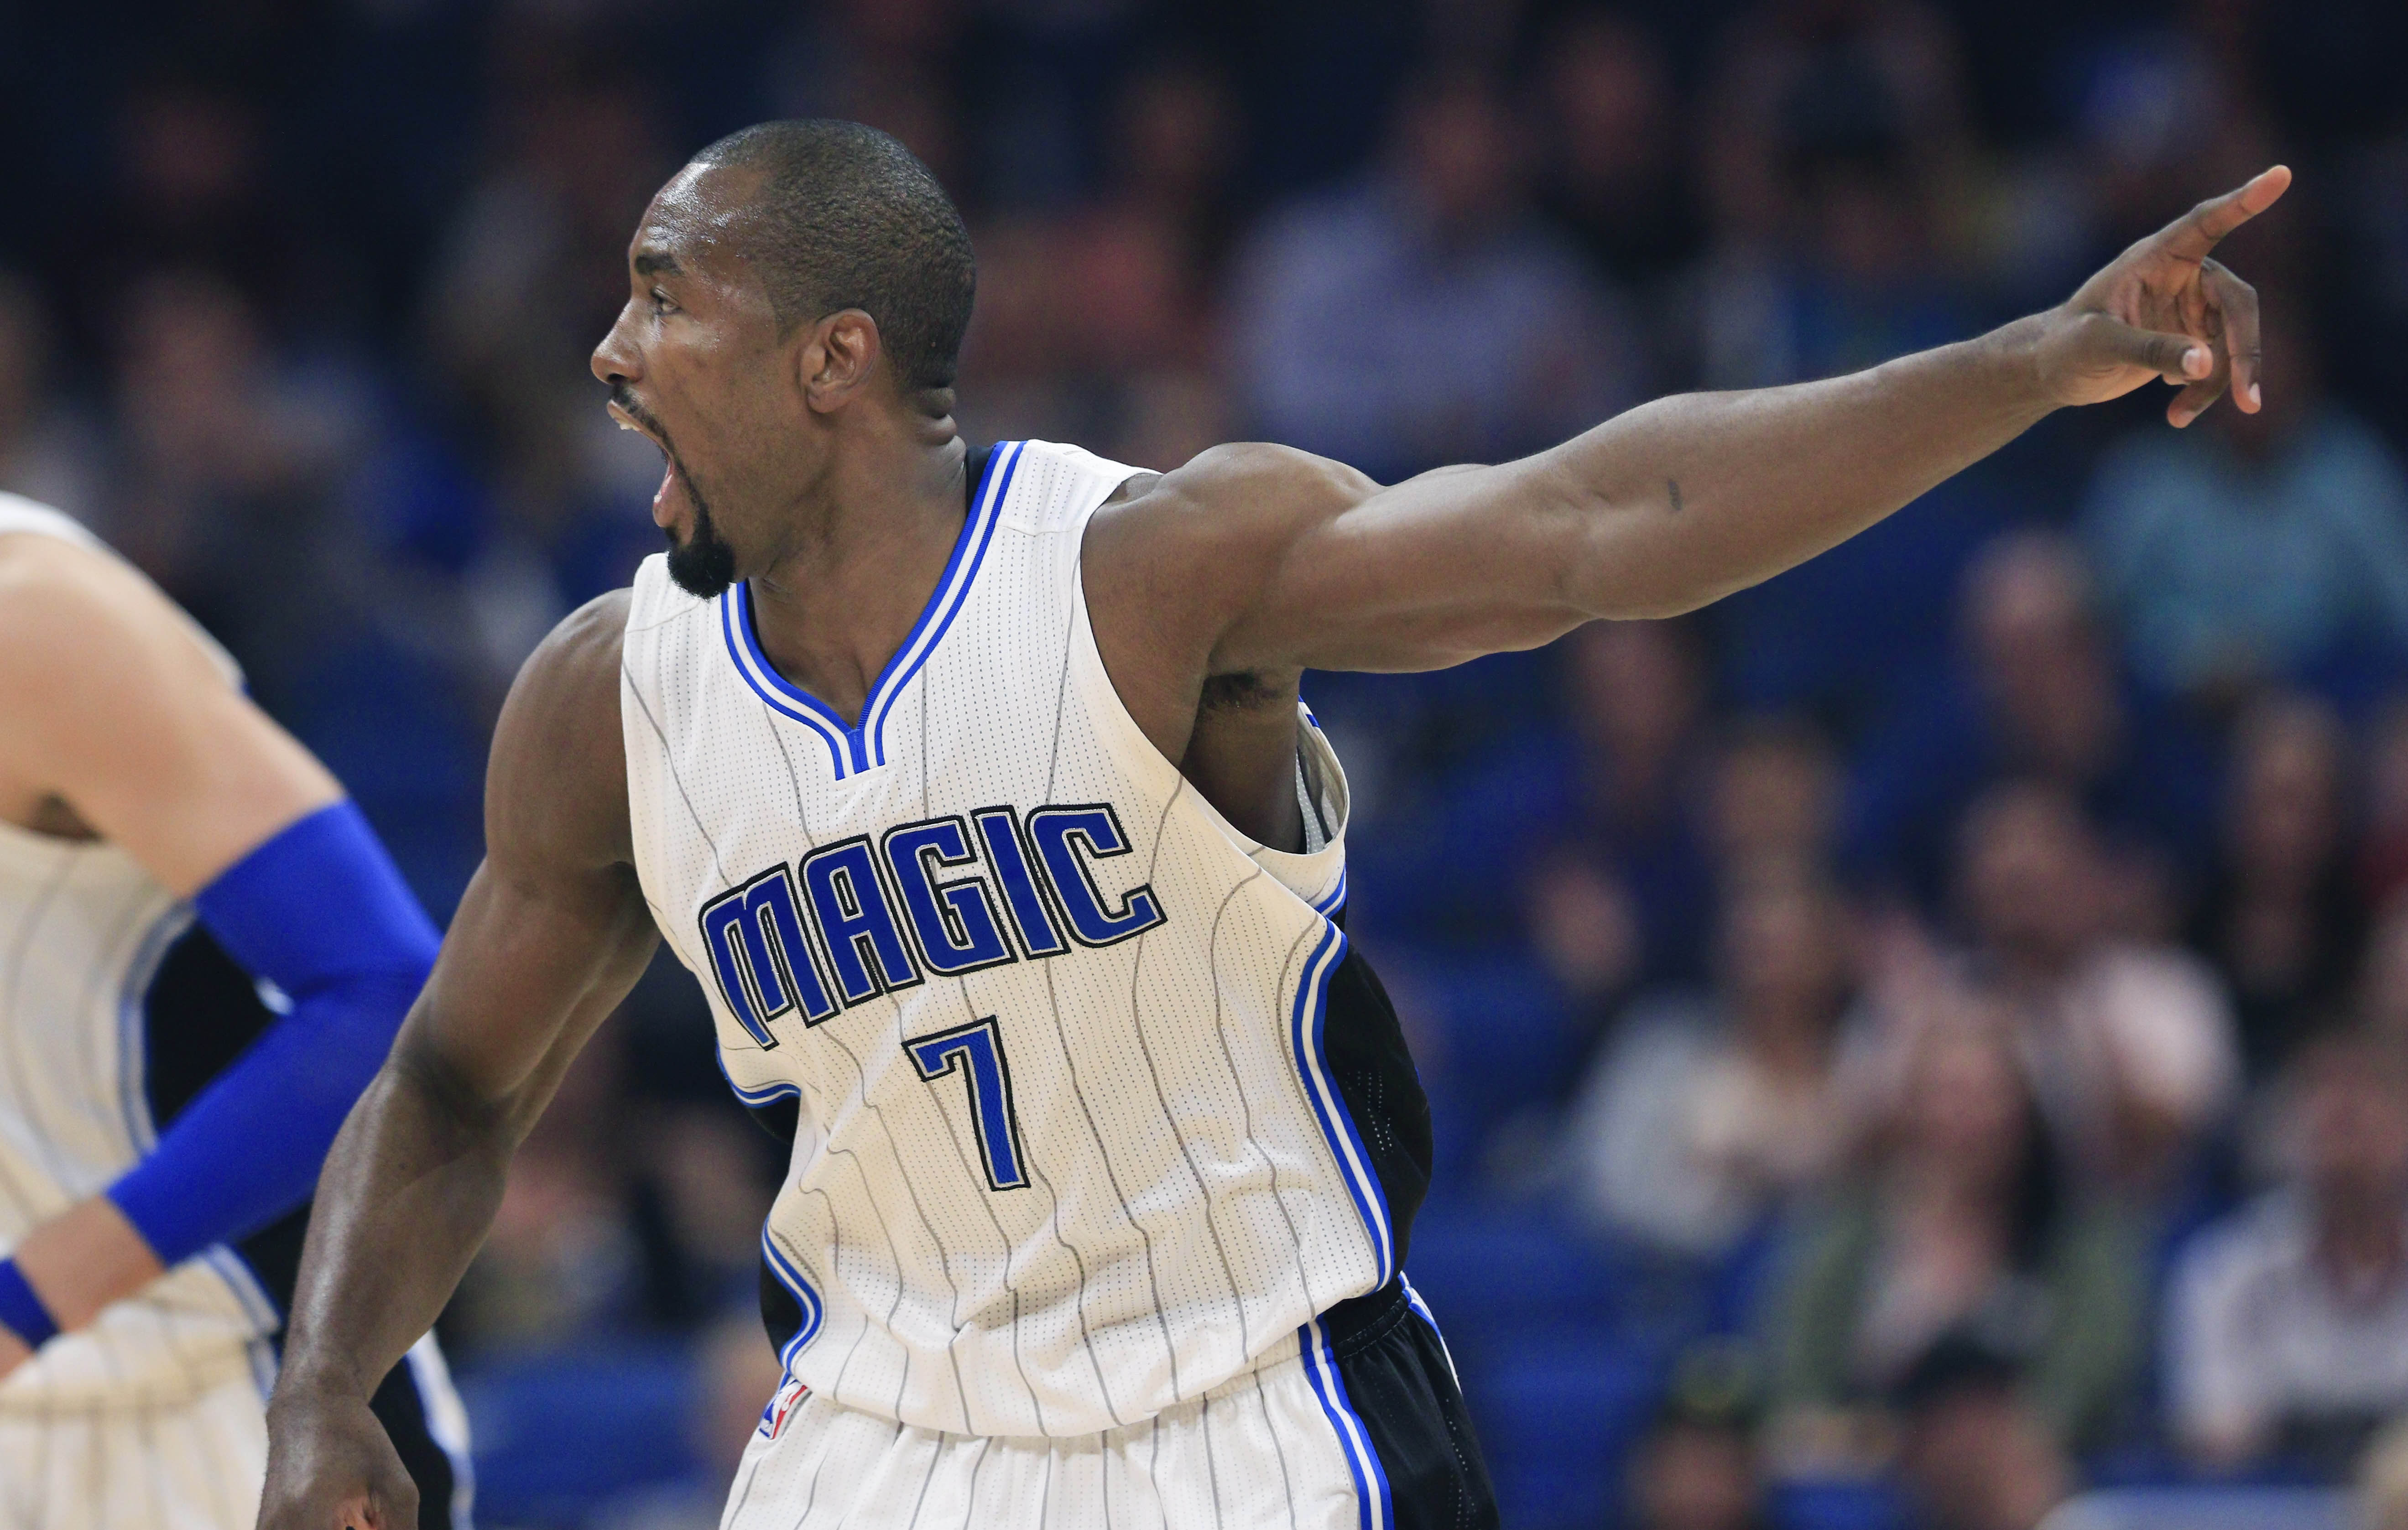 Feb 3, 2017; Orlando, FL, USA; Orlando Magic forward Serge Ibaka (7) reacts after scoring during the first quarter of an NBA basketball game against the Toronto Raptors at Amway Center. Mandatory Credit: Reinhold Matay-USA TODAY Sports